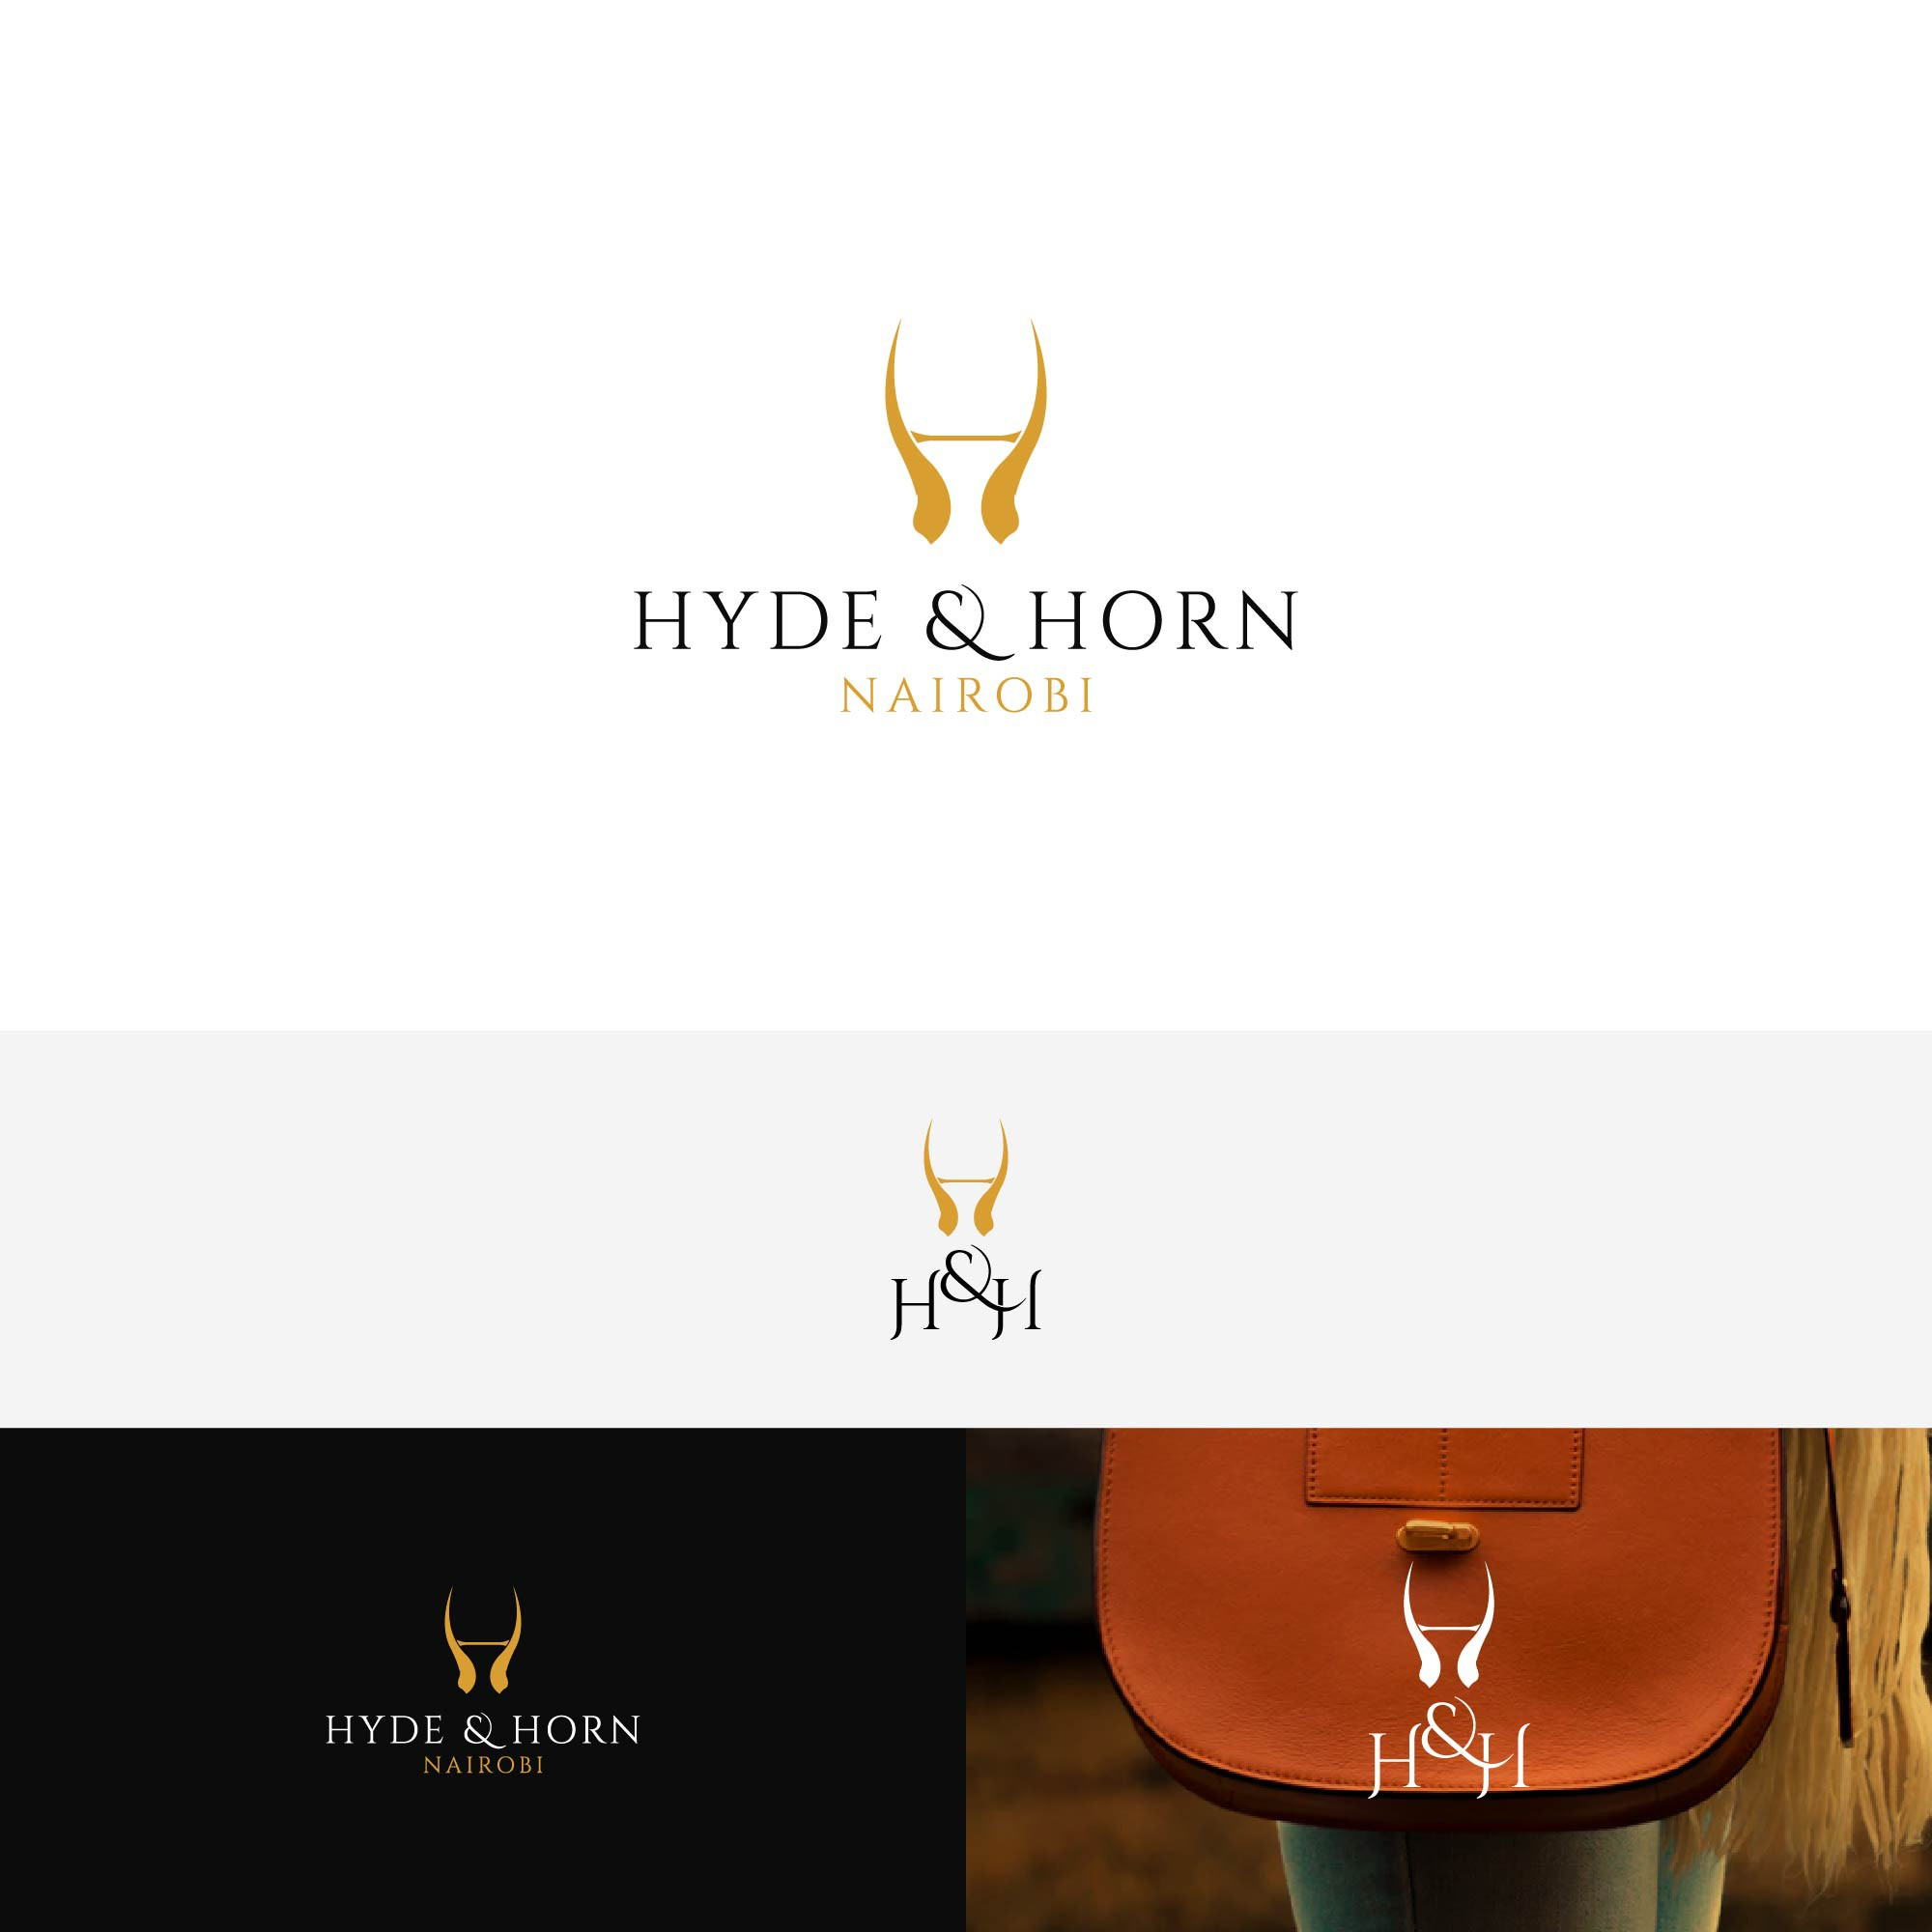 Hyde & Horn : Luxurious artisanal leather goods with the spirt of Africa